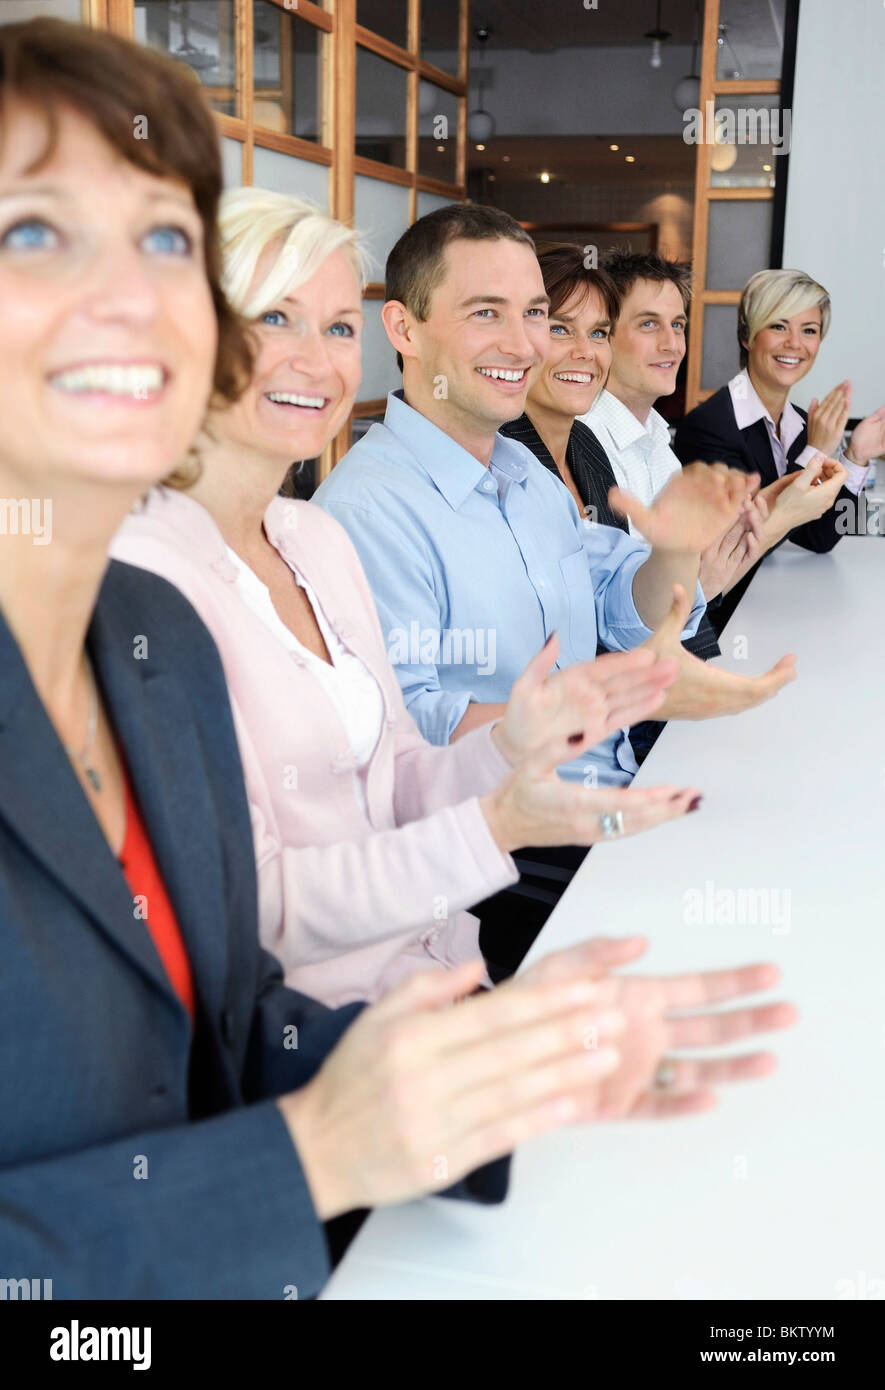 Colleagues clapping one's hands - Stock Image